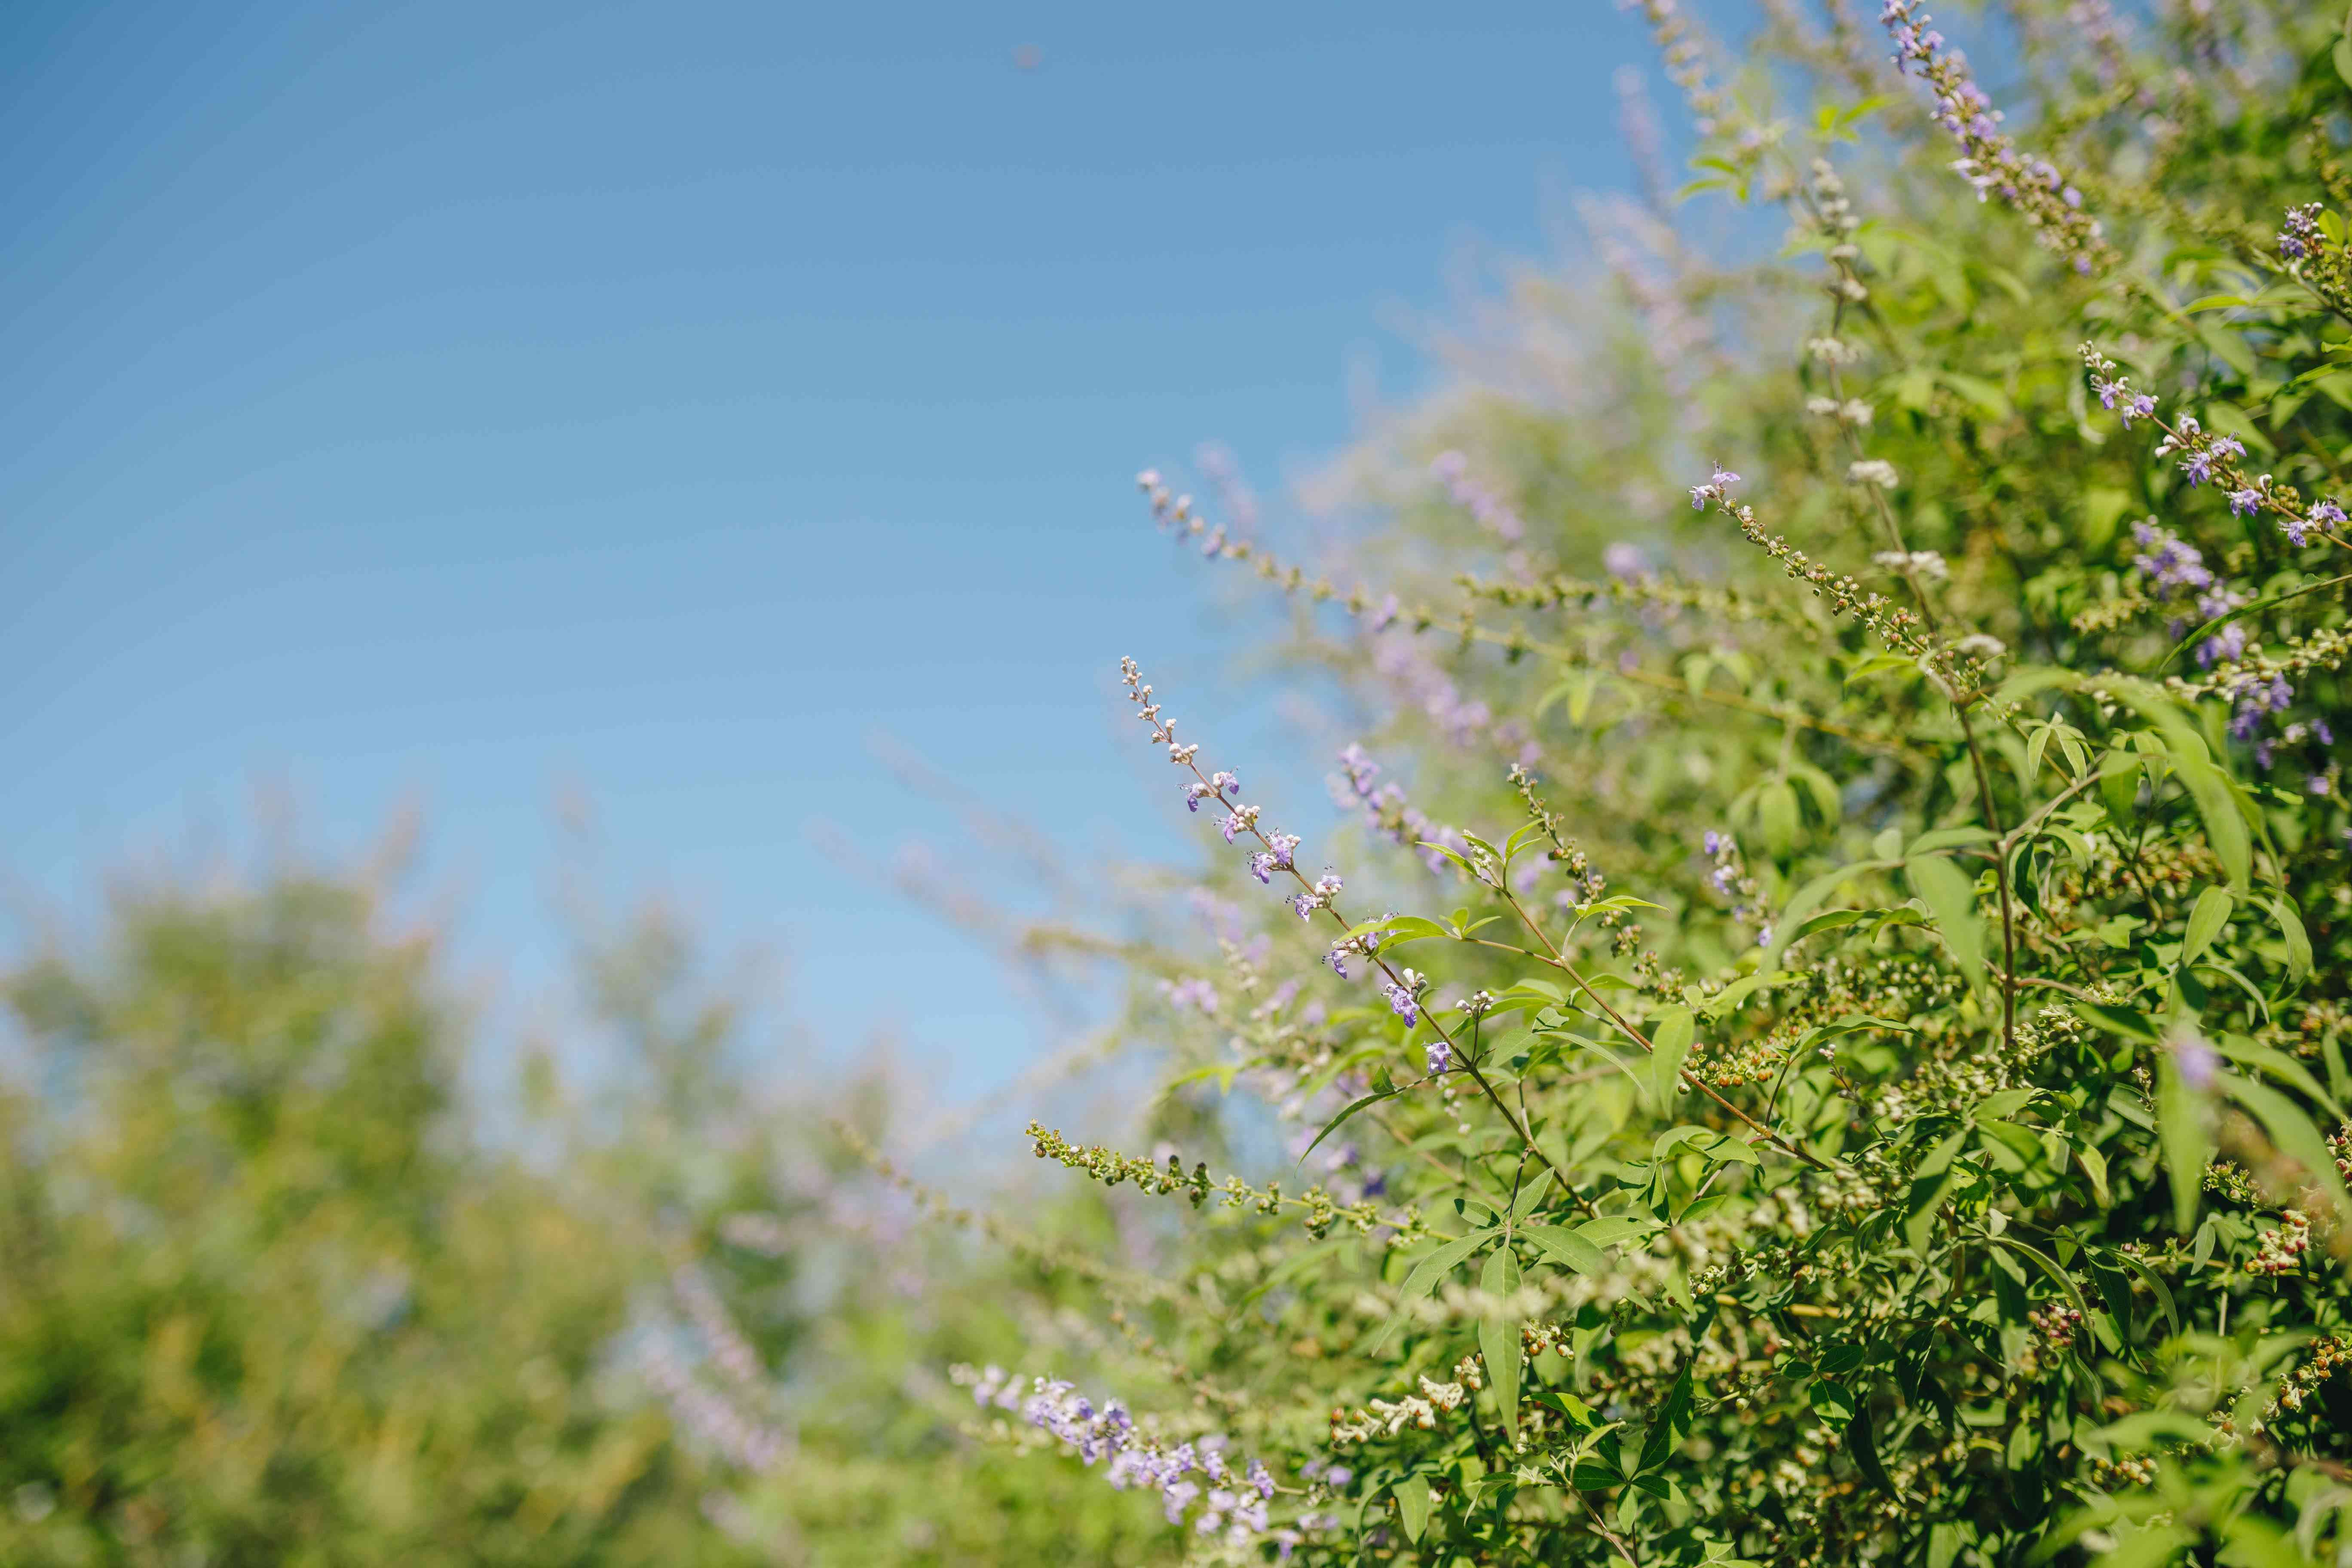 Vitex tree limbs with purple flowers before a blue sky background.